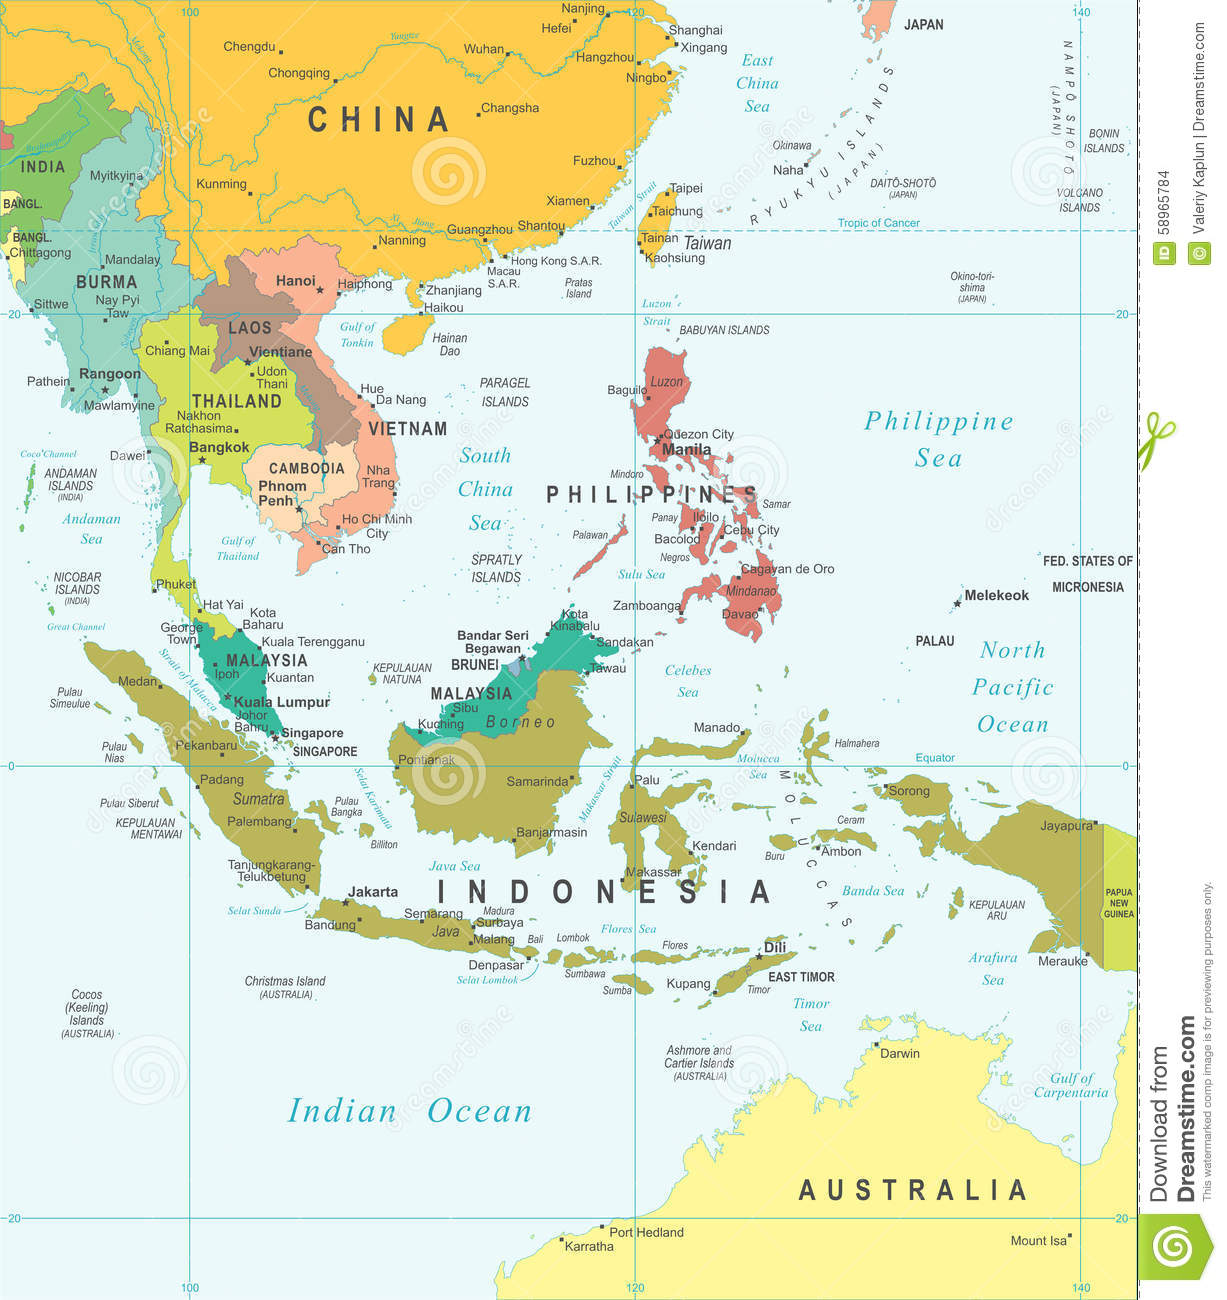 mapping the southeast asian telecommunications service In several regions of the world, including south/southeast asian countries, land cover/land use change (lc/luc) is one of the most important types of environmental change, and it is occurring rapidly.